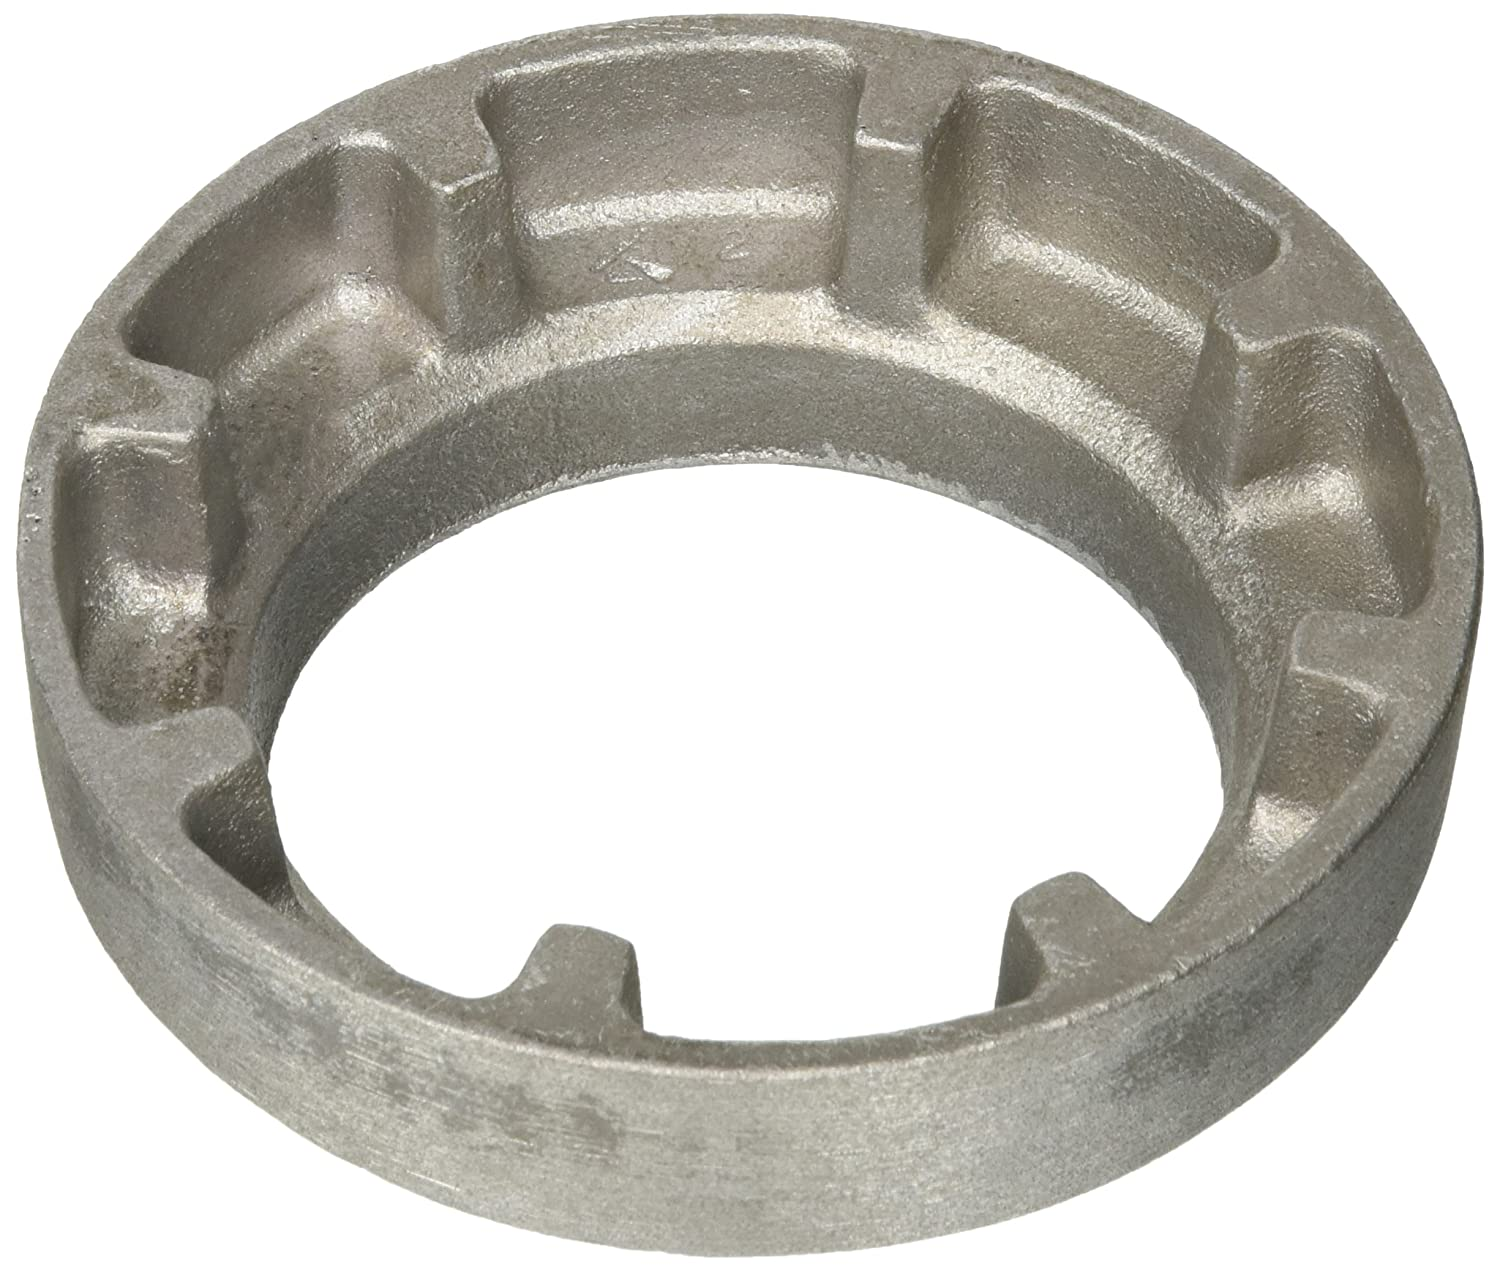 Specialty Products Company 2013 1 Coil Spring Spacer